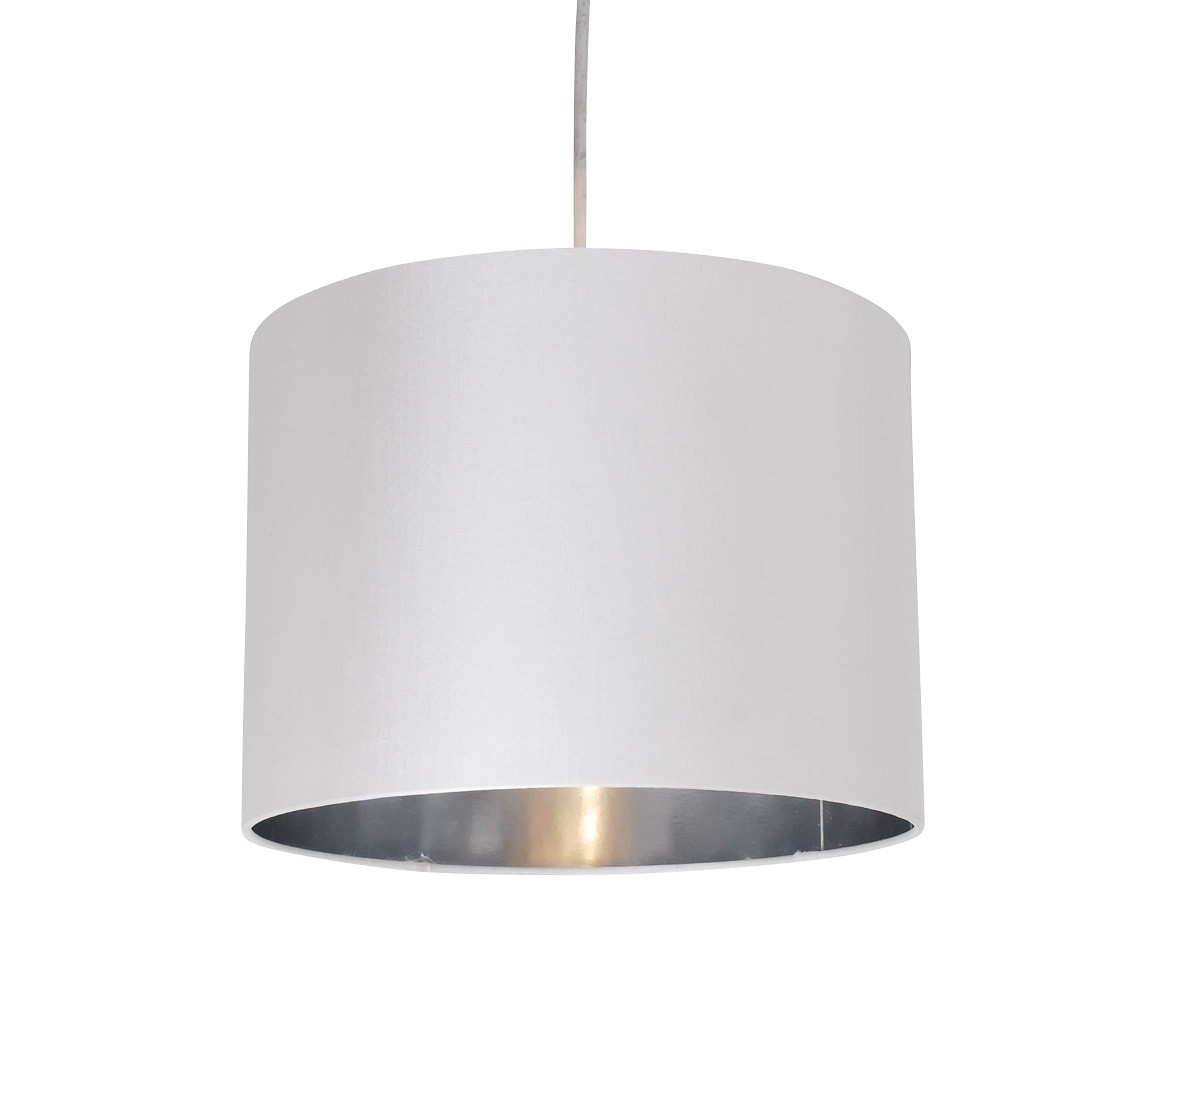 Ceiling Light Shades White Faux Silk 30cm Drum Light Shade With Chrome Inner